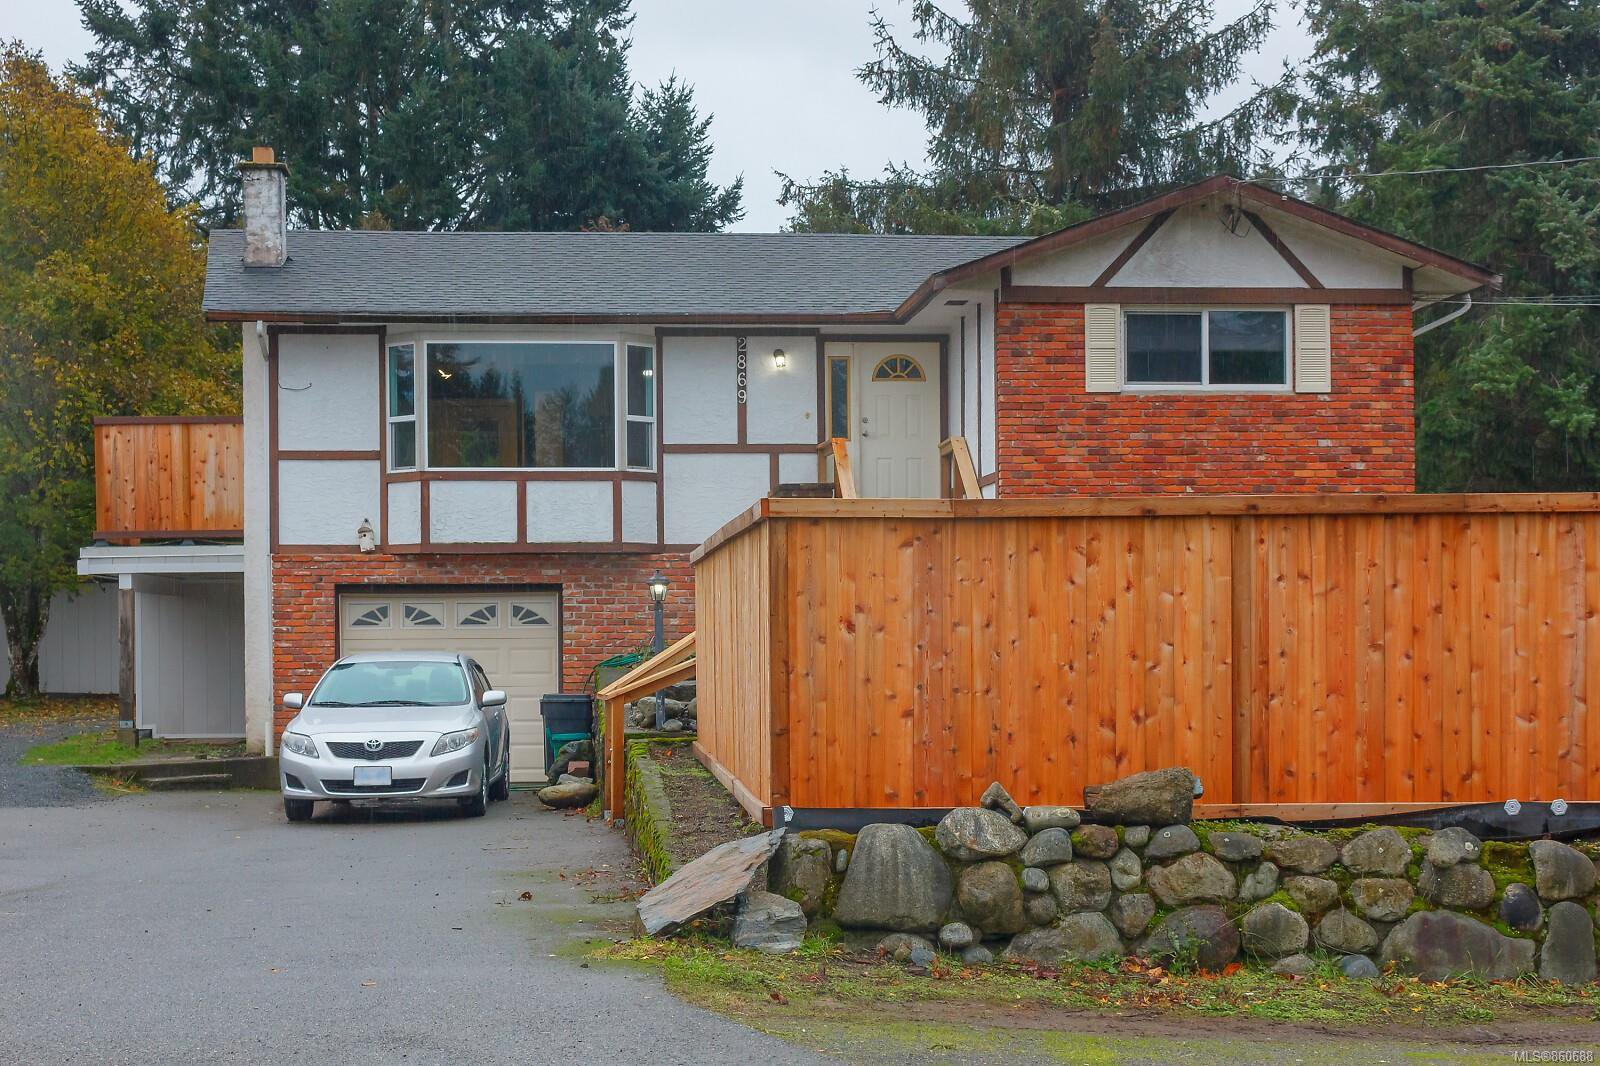 Main Photo: 2869 Acacia Dr in : Co Hatley Park House for sale (Colwood)  : MLS®# 860688